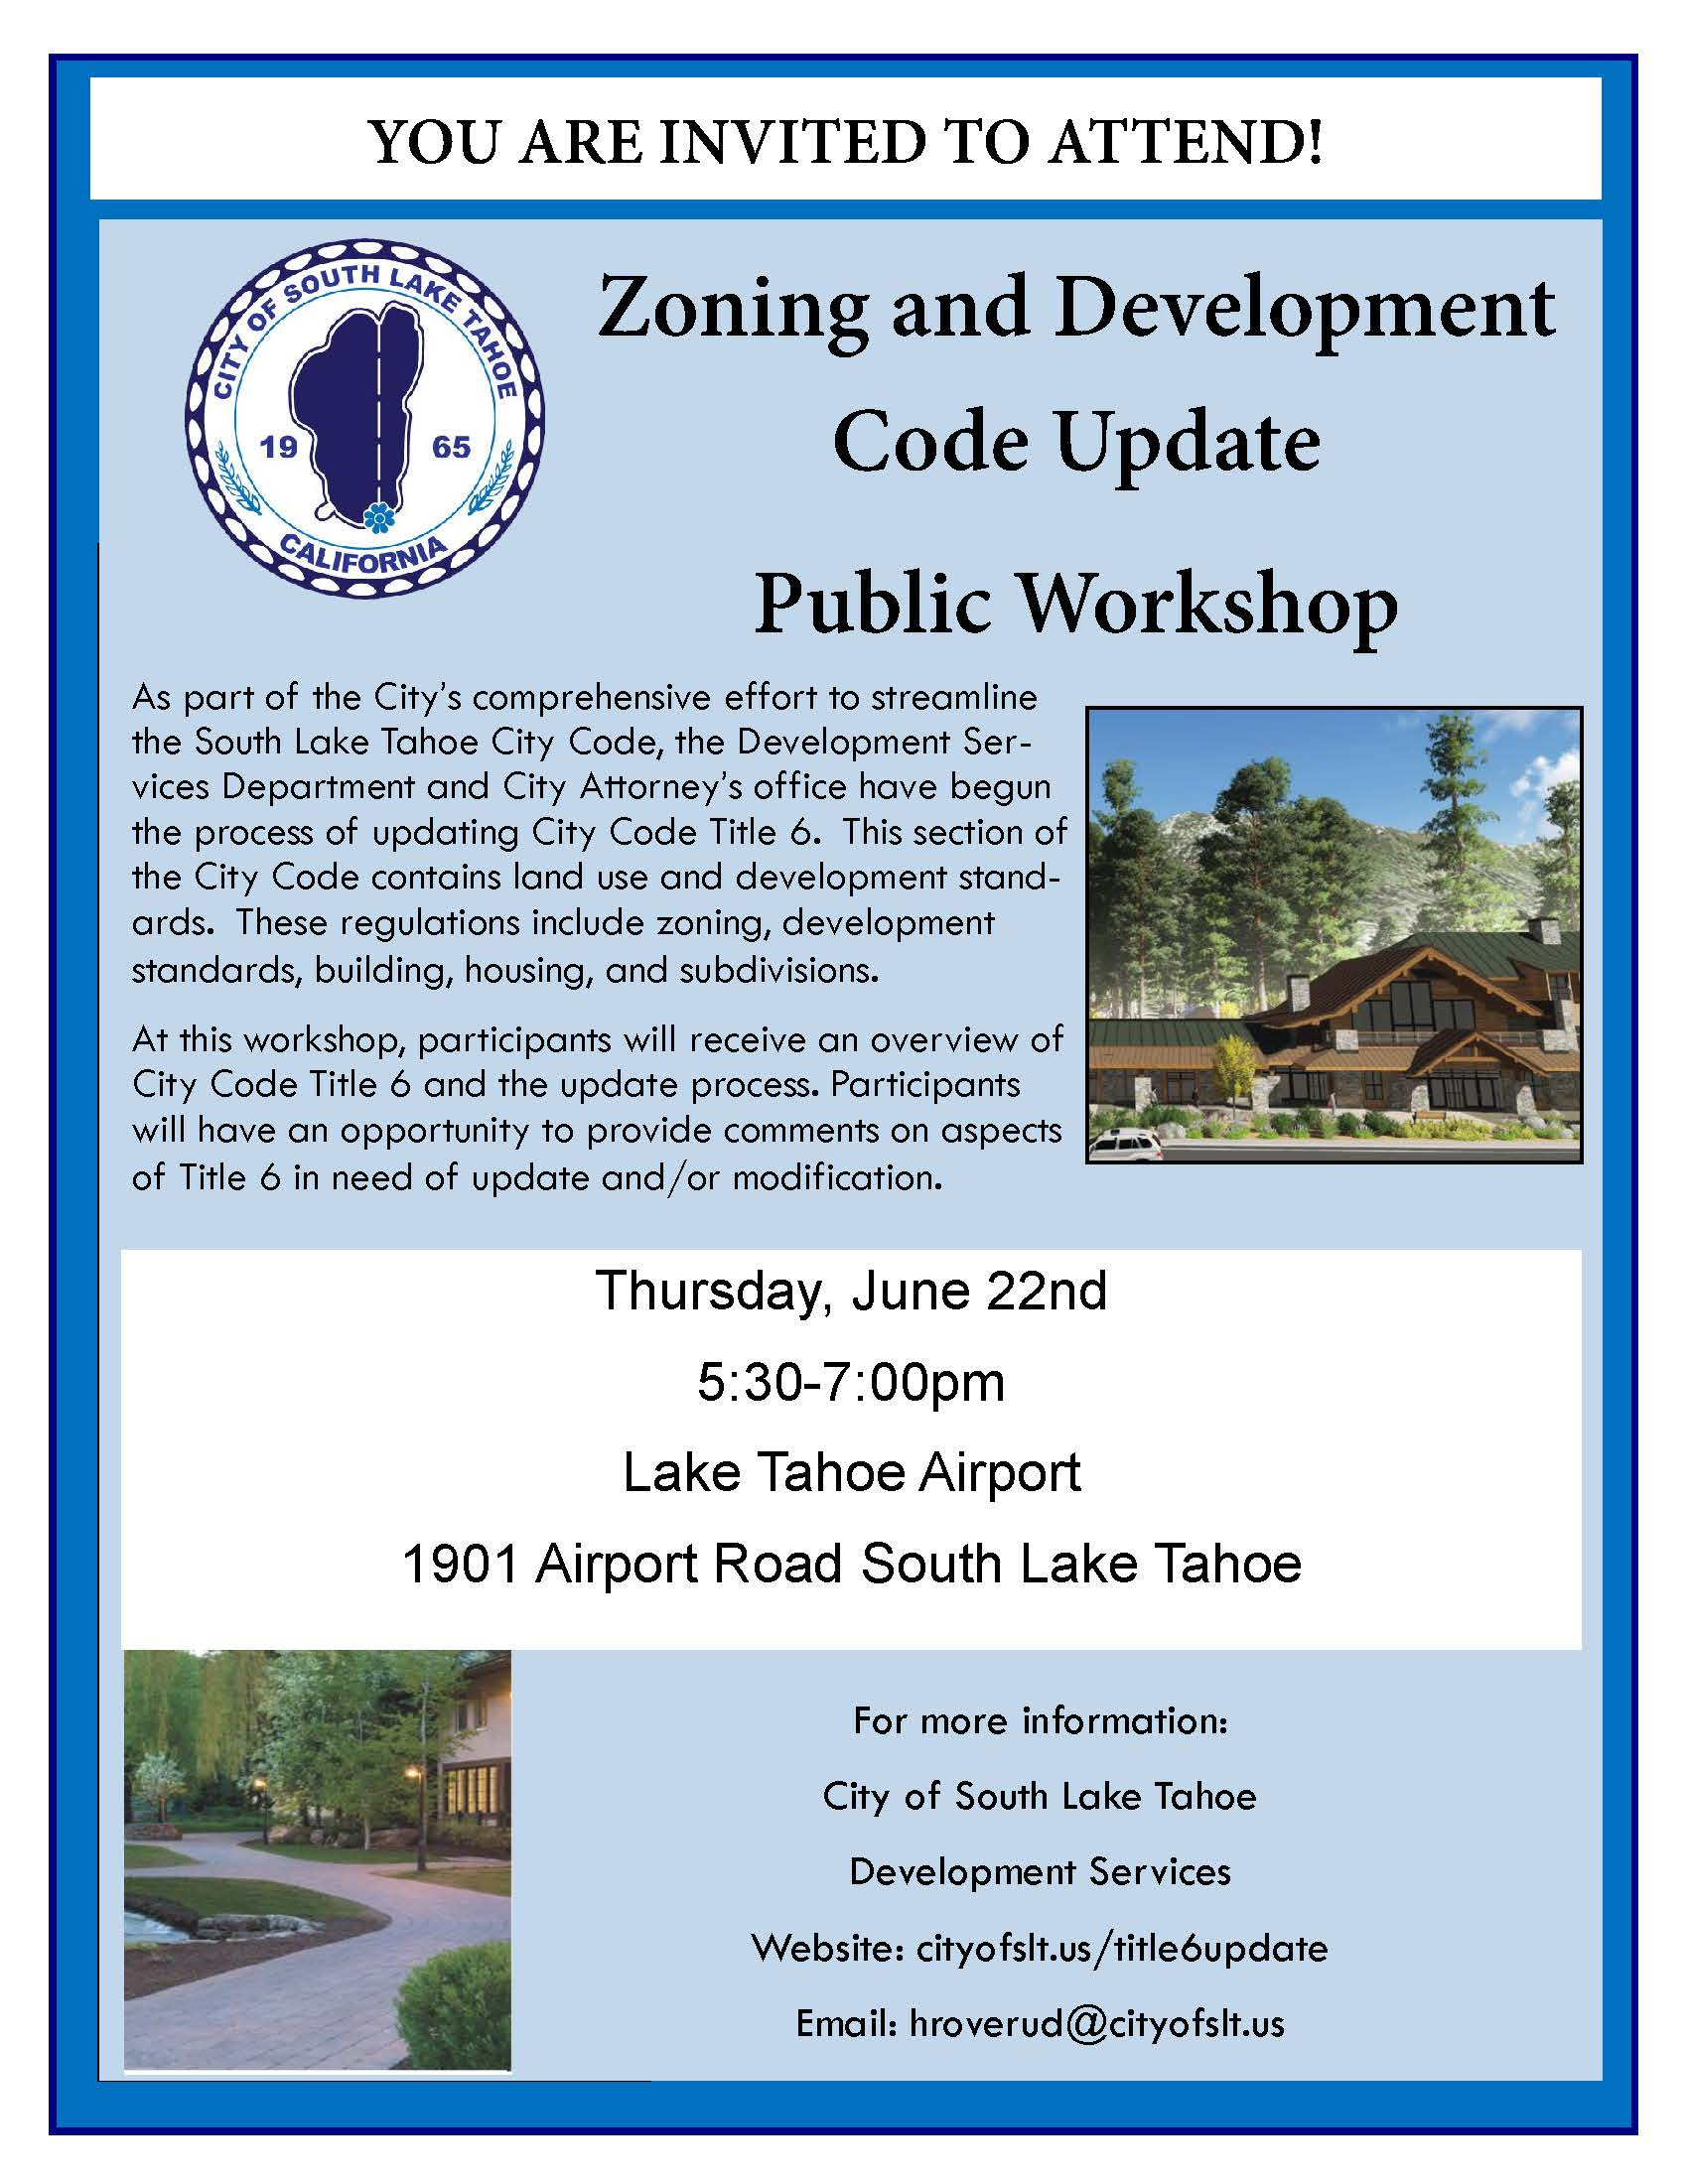 Zoning and Development Code Update Public Workshop flyer